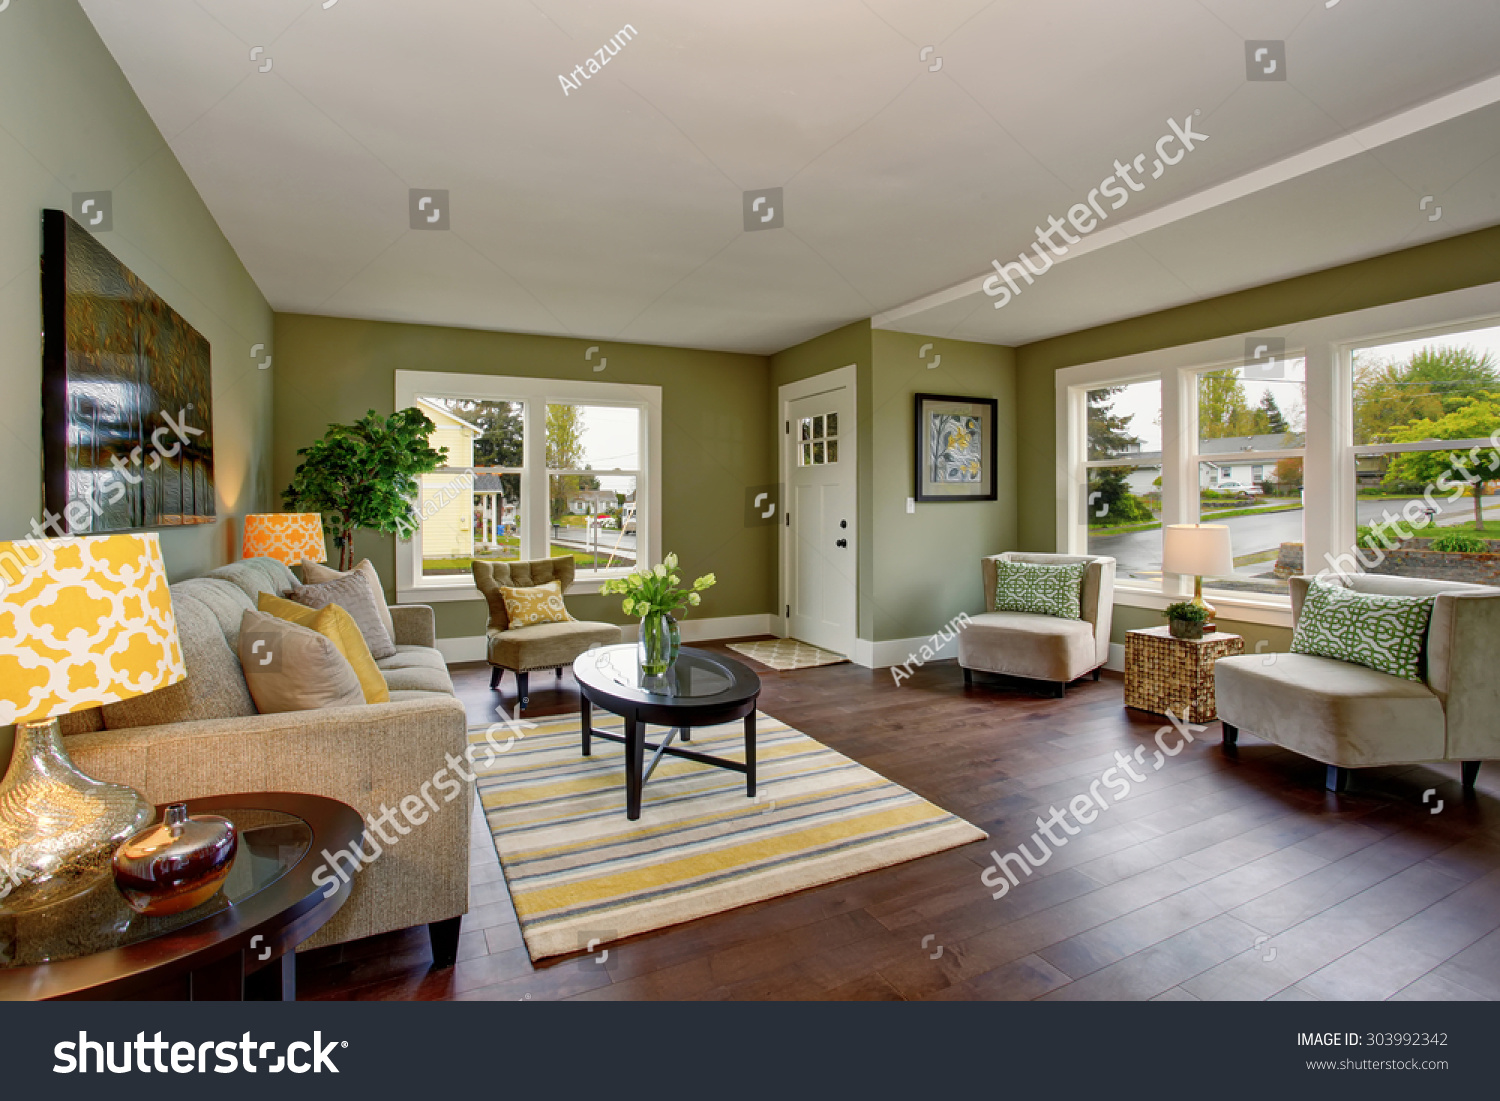 Well Decorated Living Room With Hardwood Floor And Green Yellow Theme Stock Photo 303992342